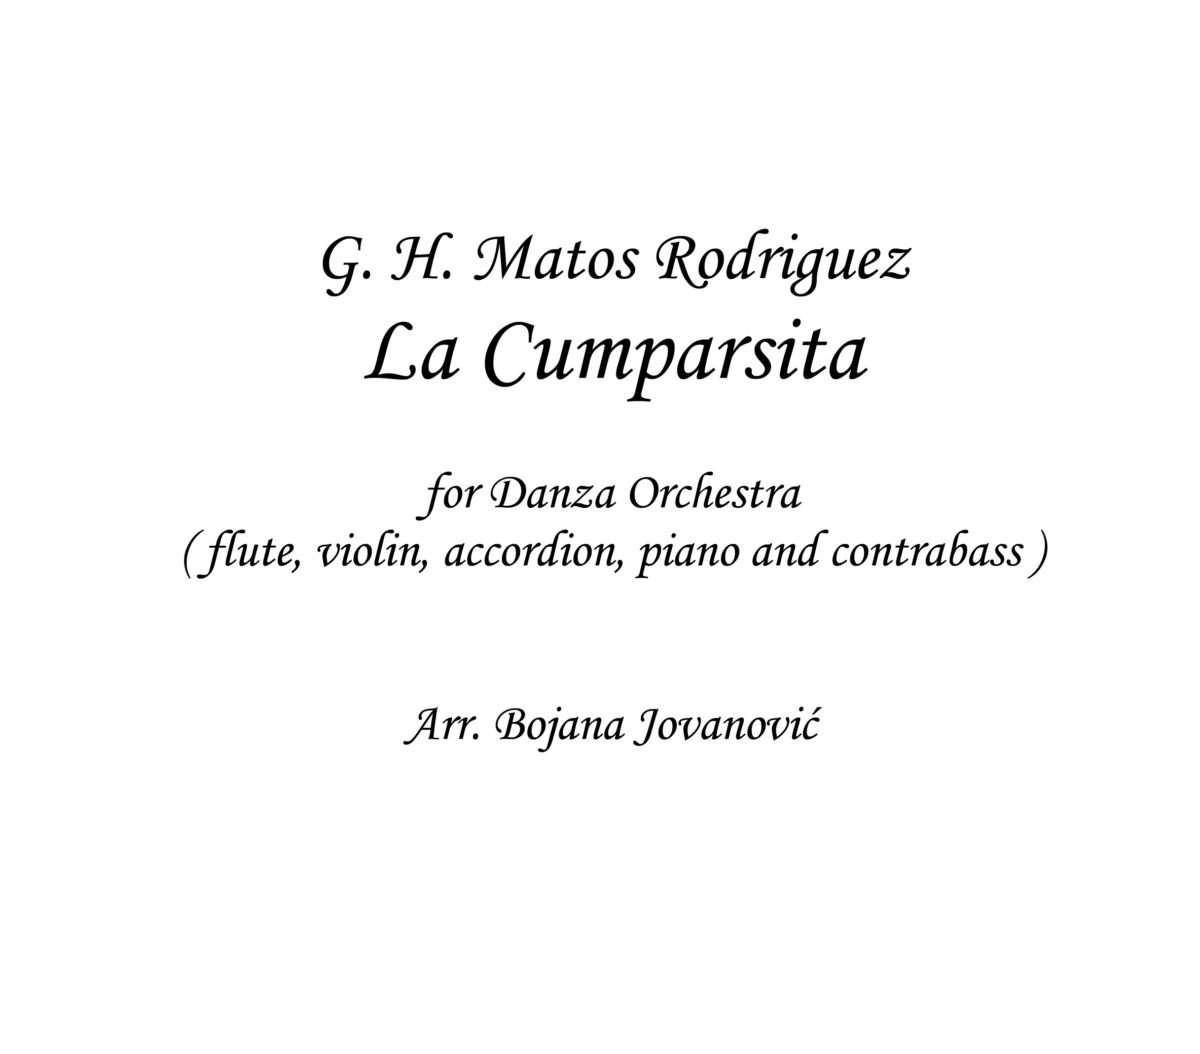 La Cumparsita (G. M. Rodriguez) - Sheet Music